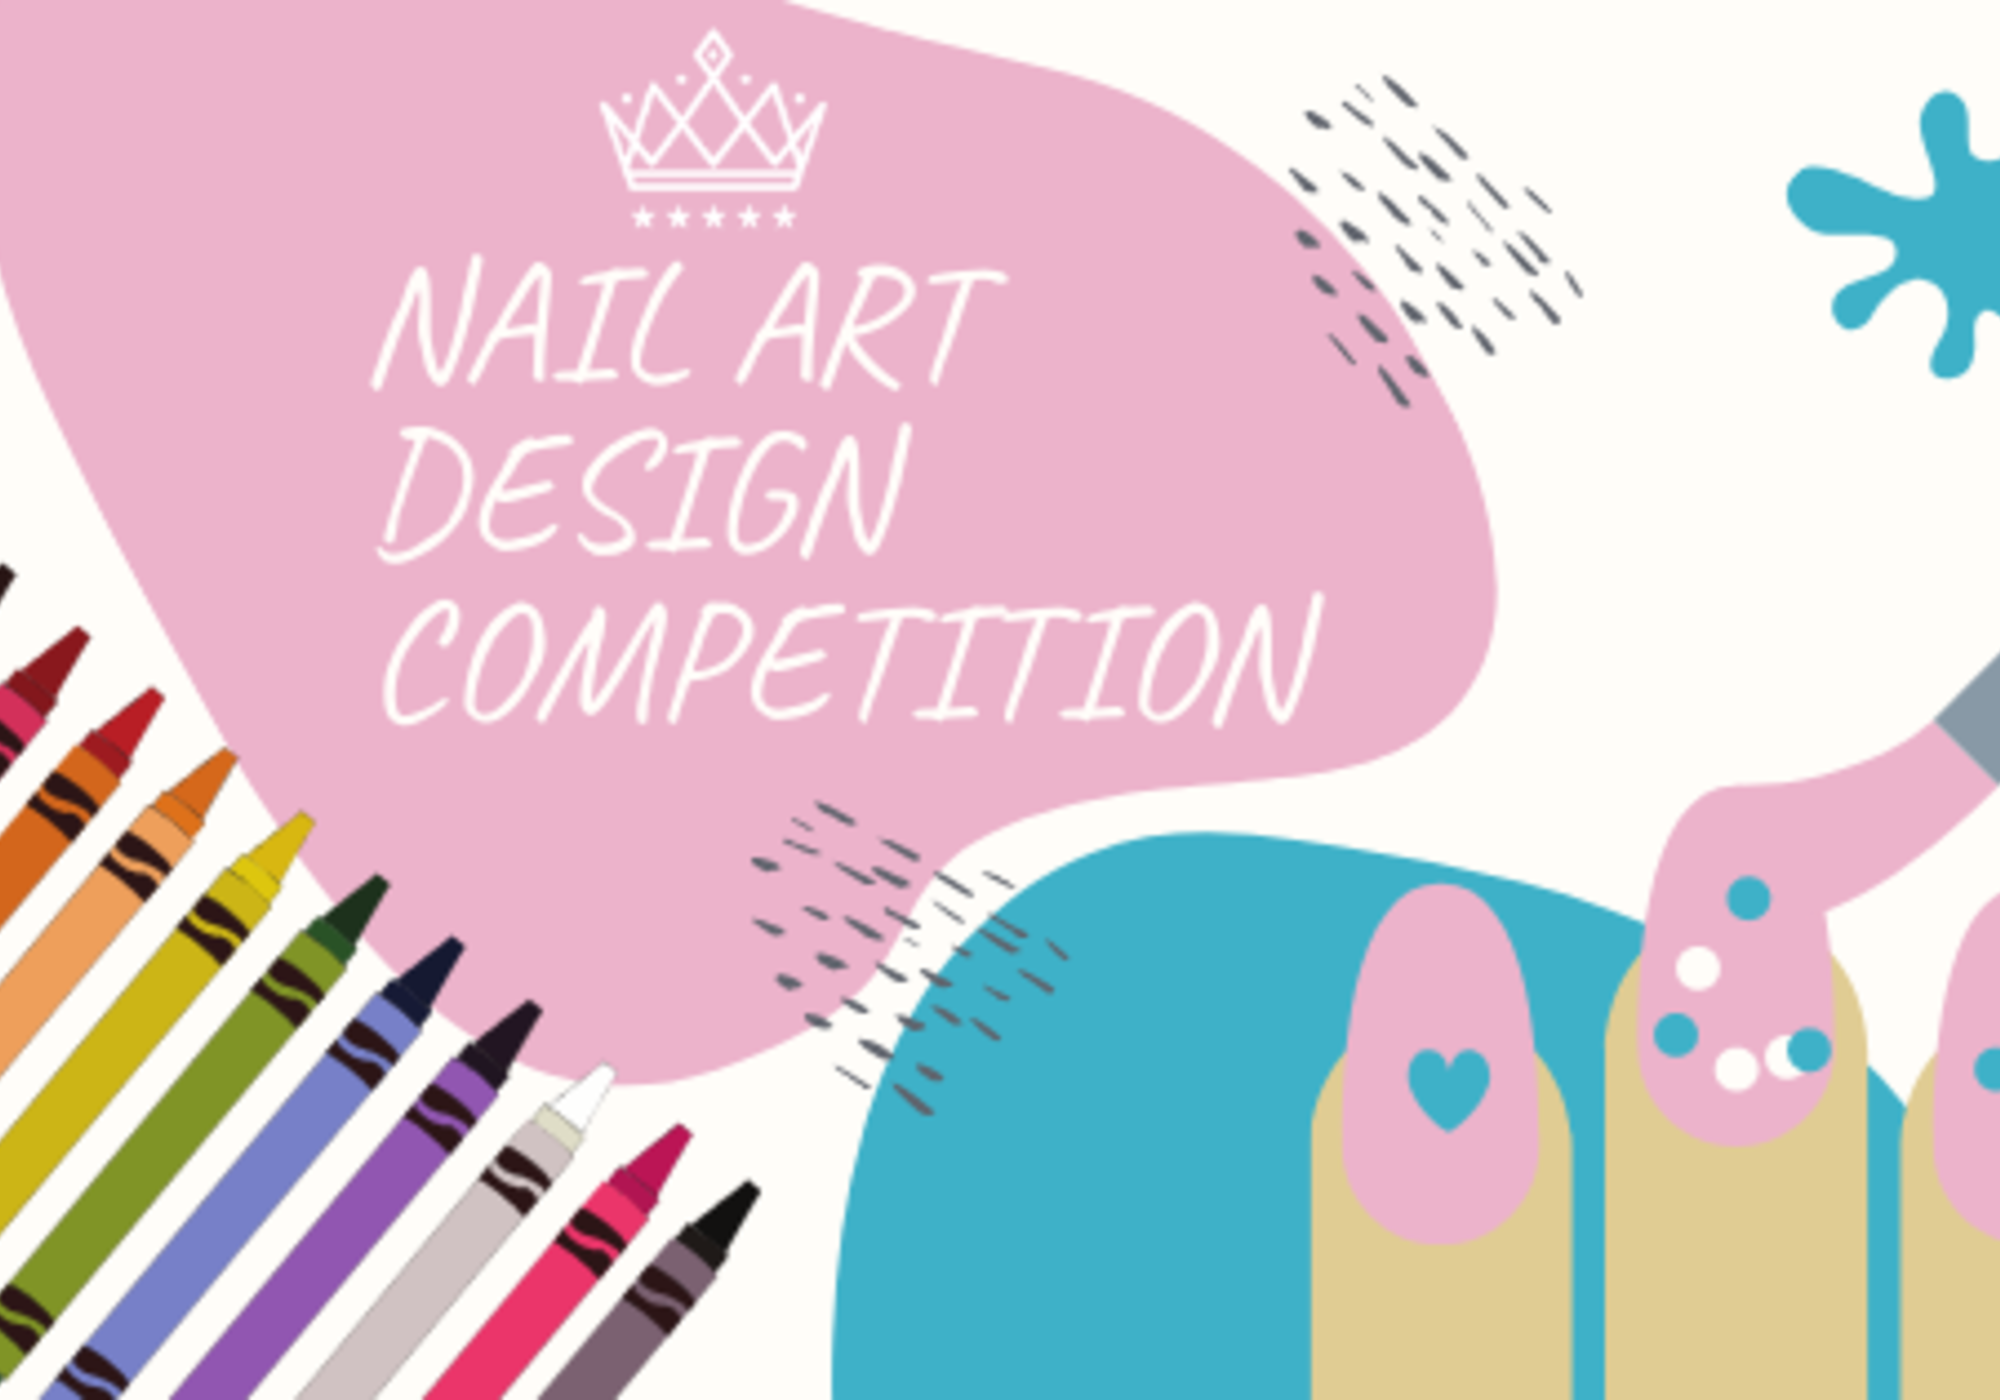 KIDS NAIL ART DESIGN COMPETITION image